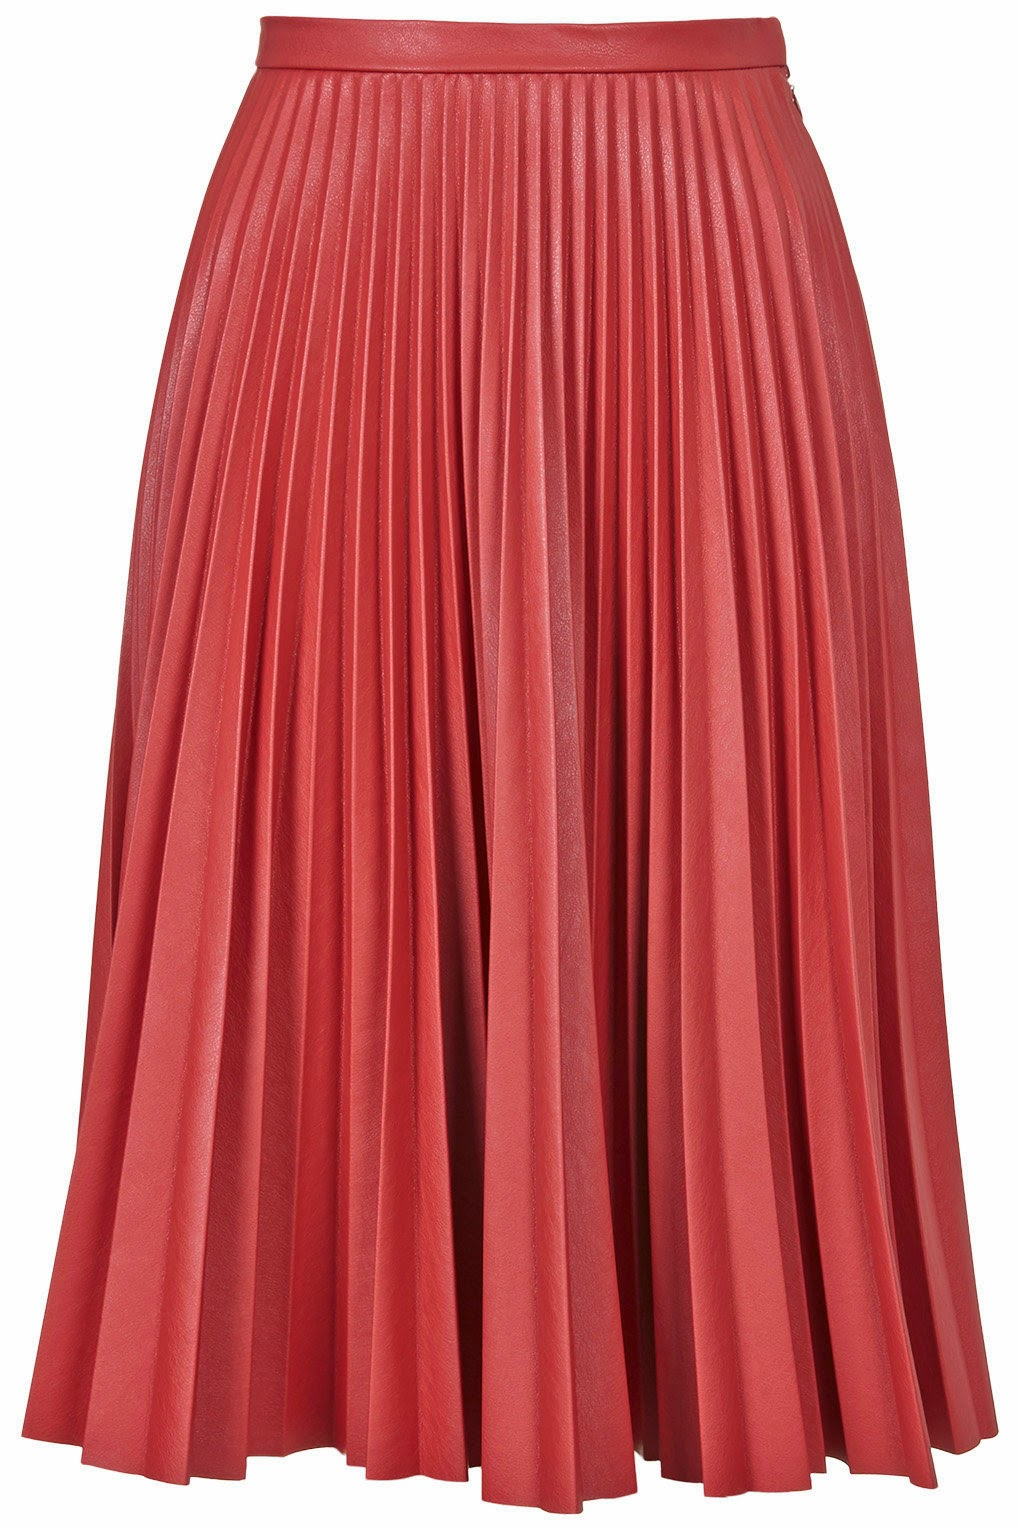 red pleated leather skirt